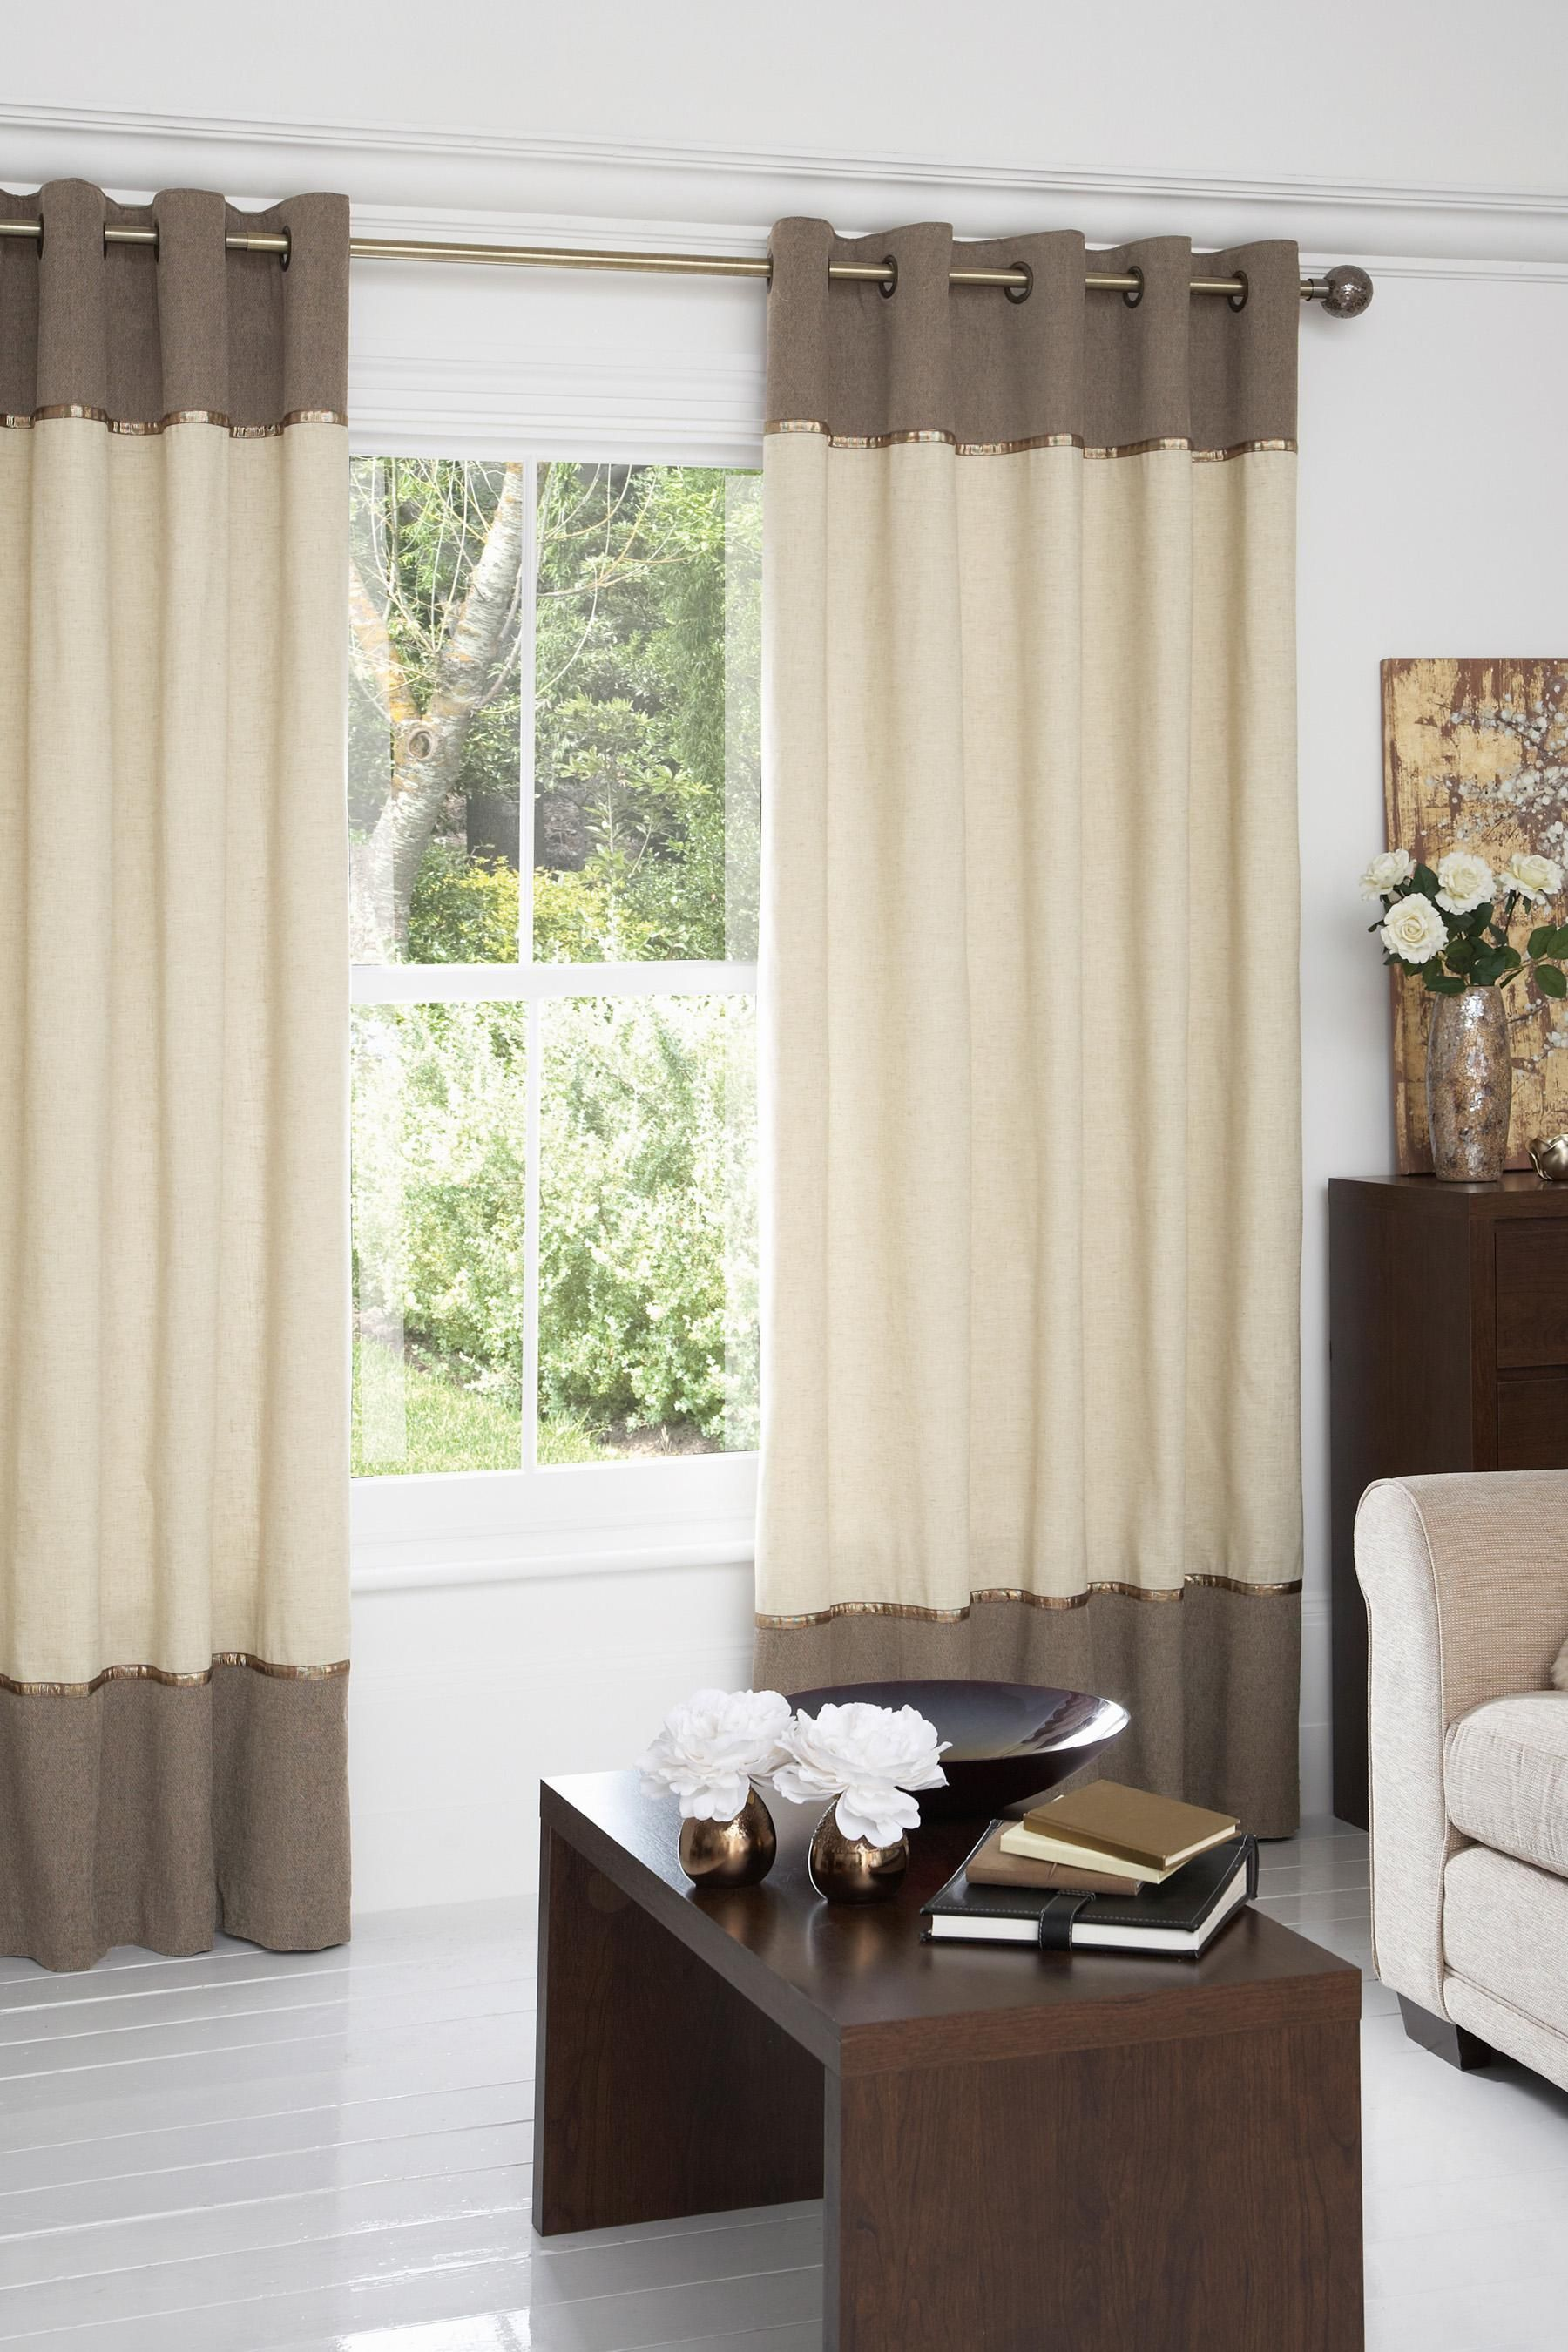 banded curtain | curtains | Pinterest | Window, Curtain ideas and ...